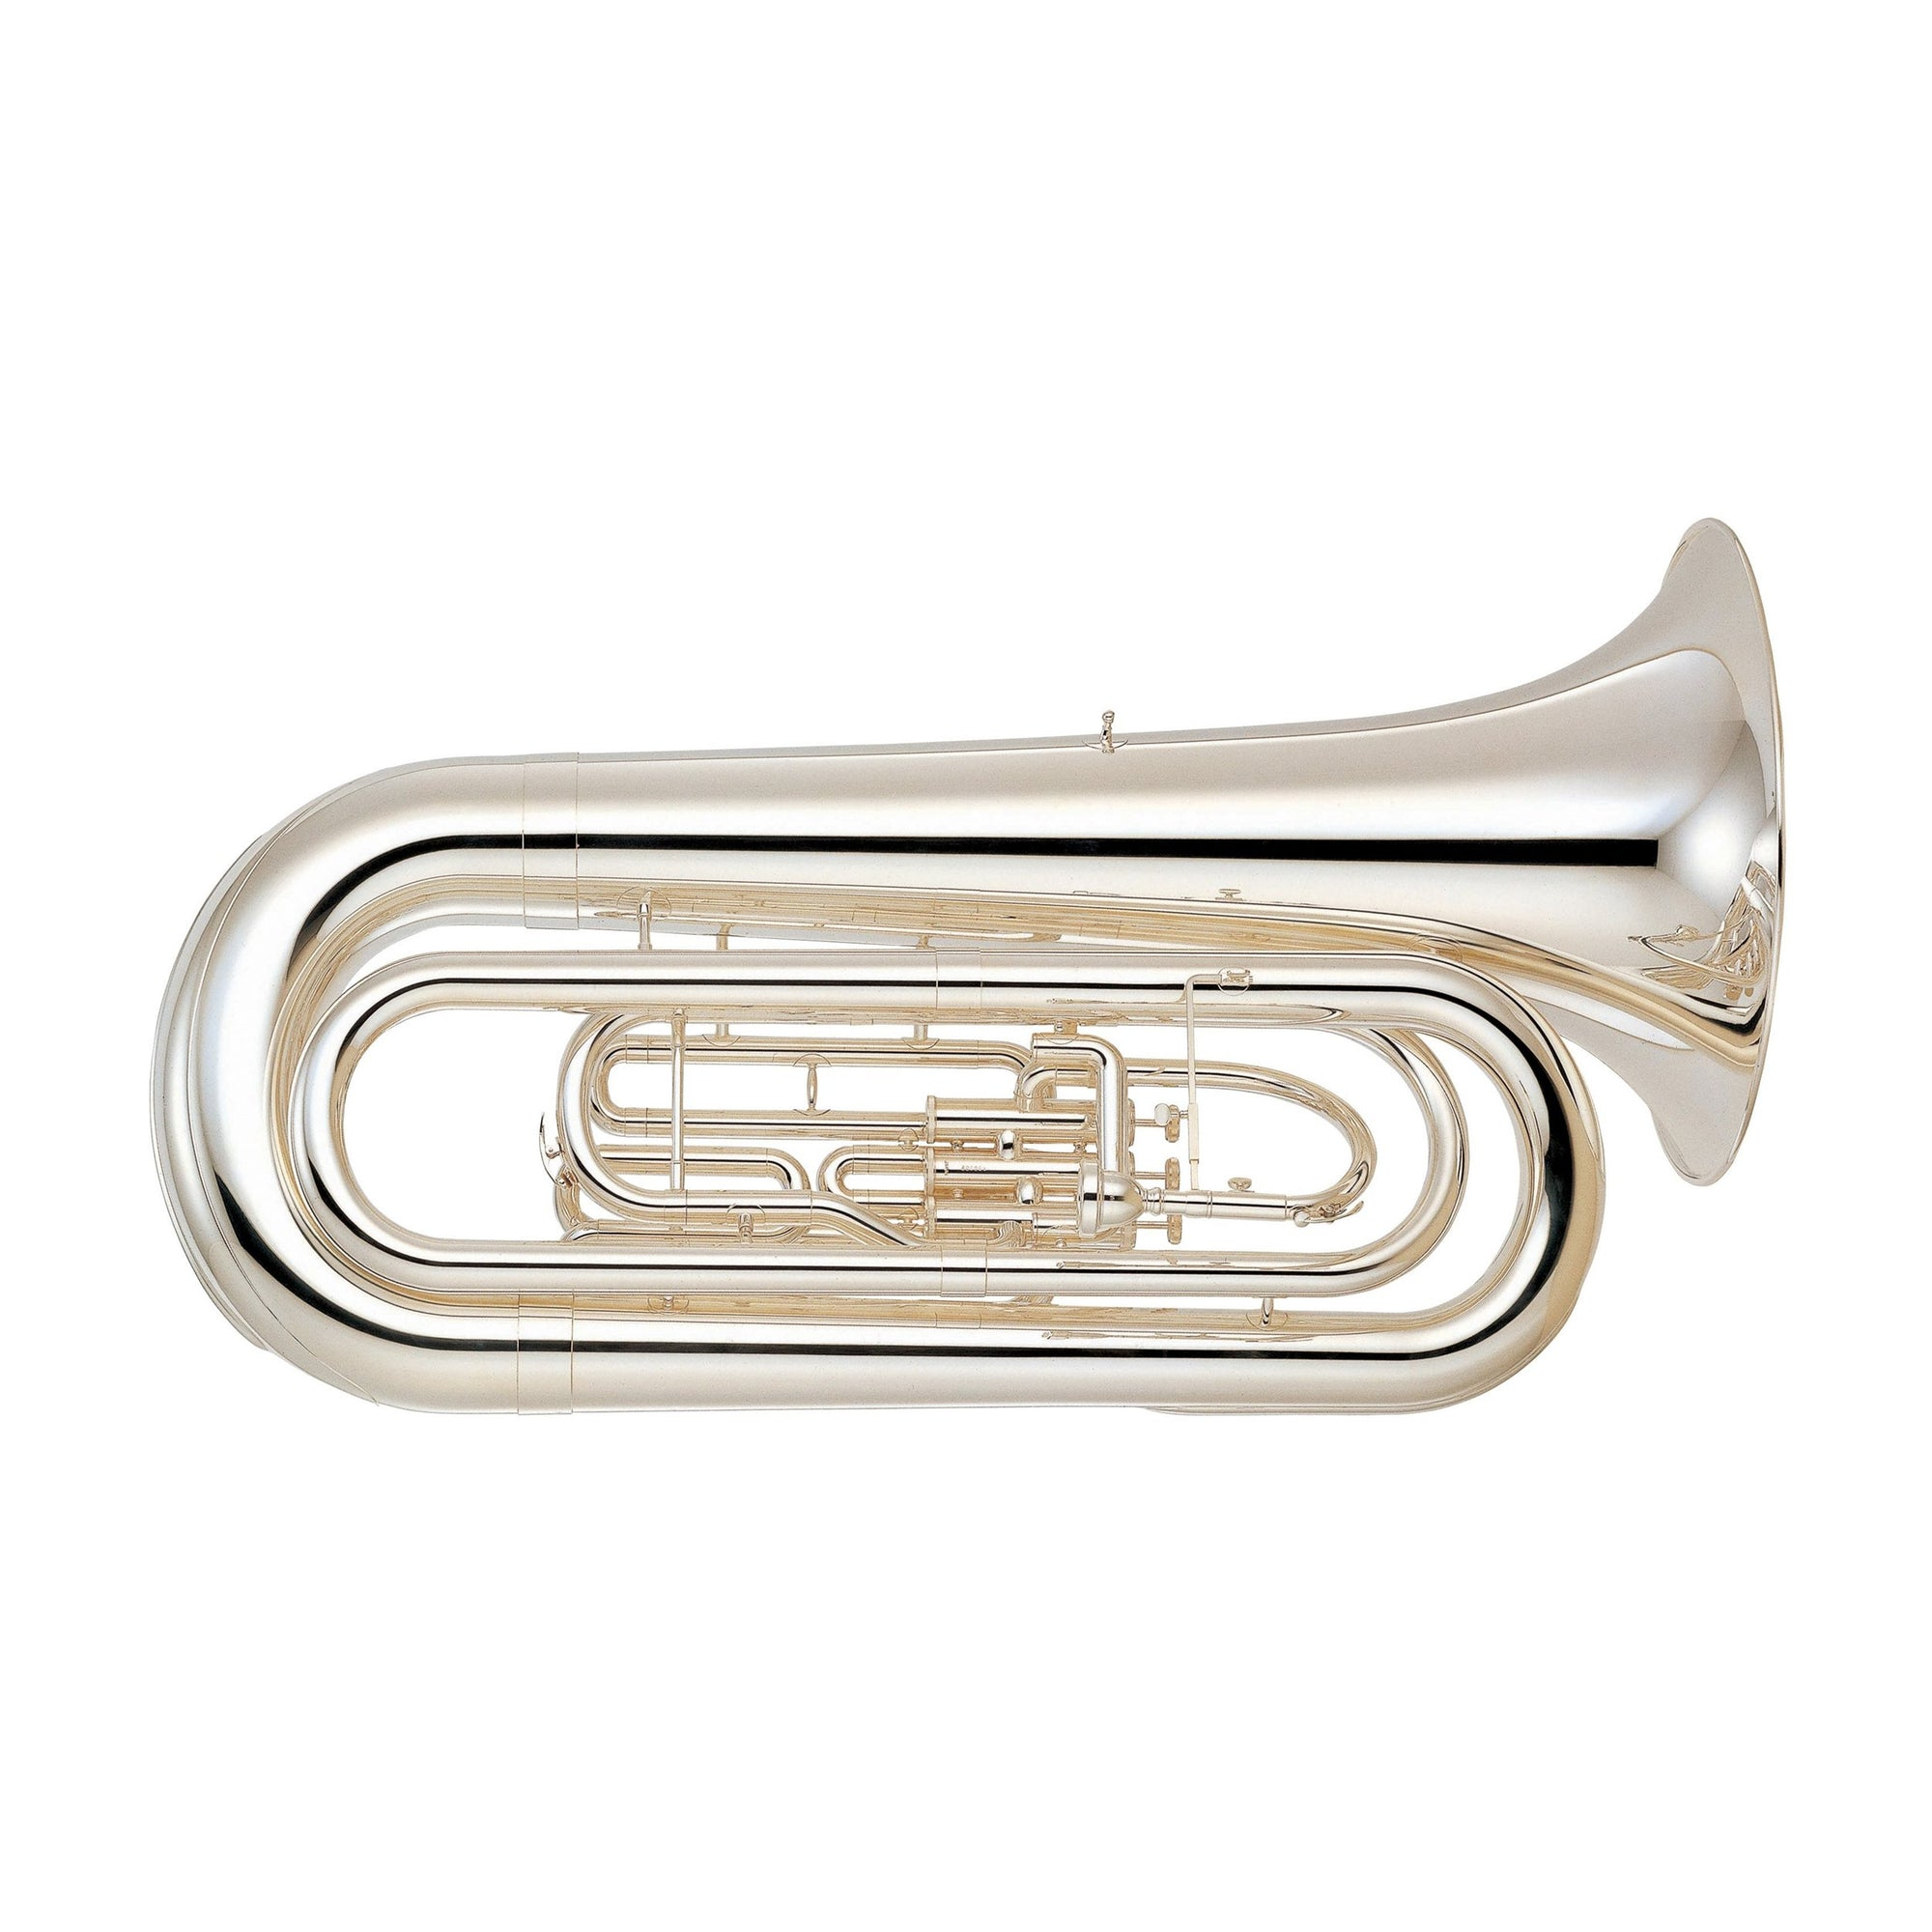 Yamaha - YBB-201MS - Convertible BBb Tuba-Tuba-Yamaha-Music Elements